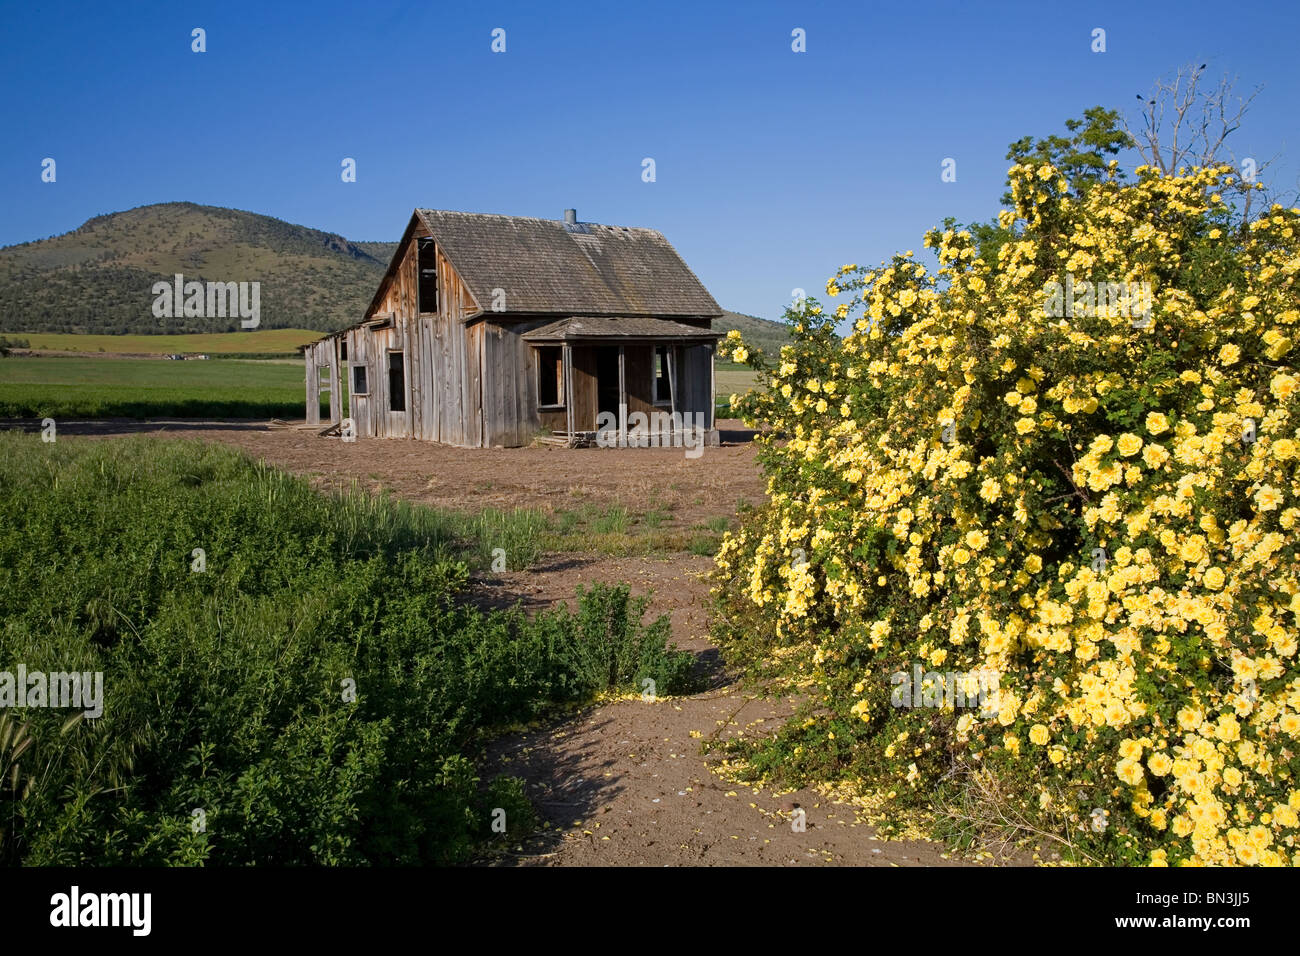 An abandoned, depression era farmhouse, near the town of Culver in Central Oregon. - Stock Image